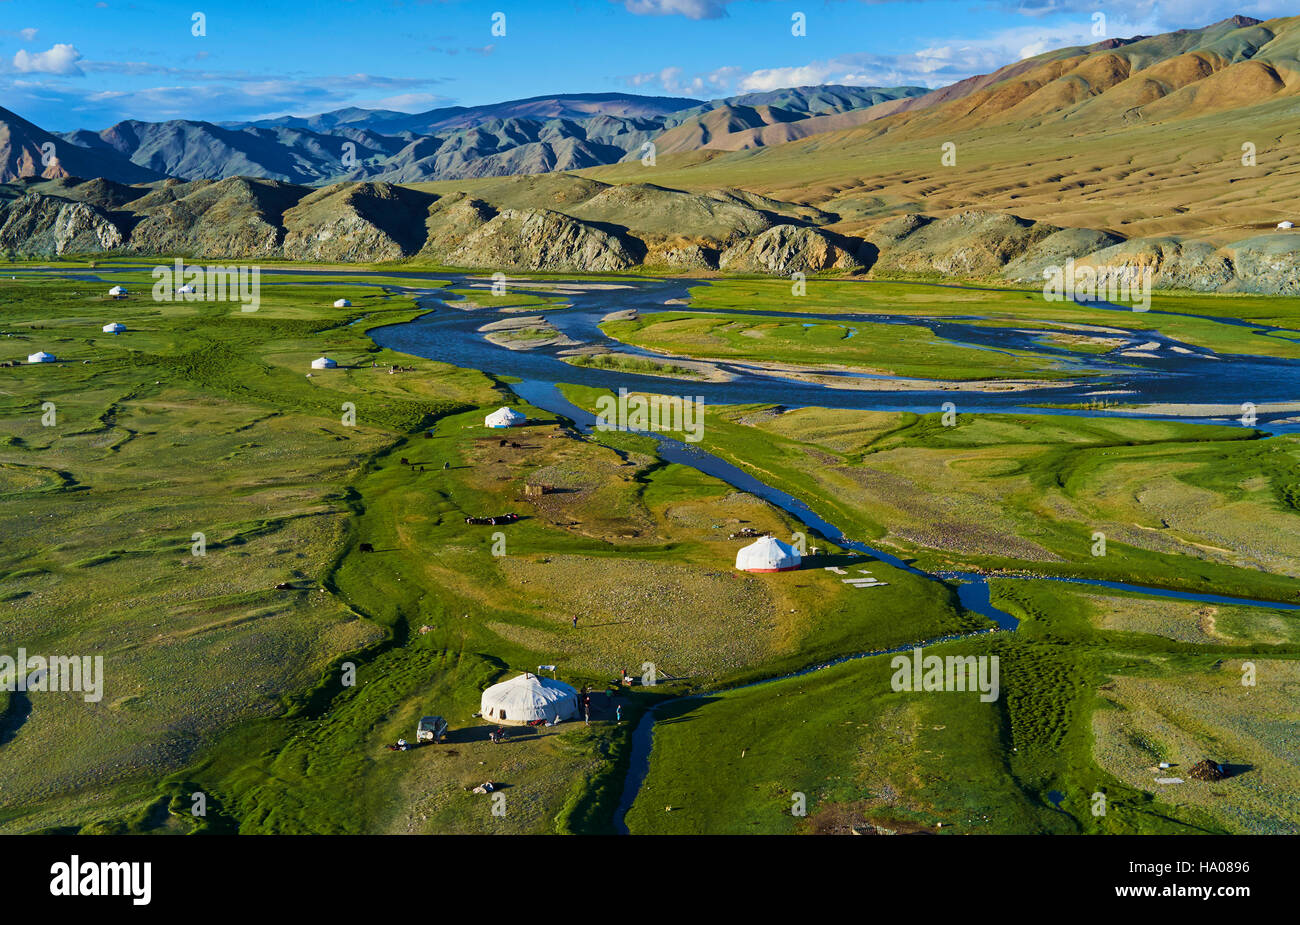 Mongolia, Bayan-Ulgii province, western Mongolia, the delta of the Sagsay river in the Altay mountains - Stock Image